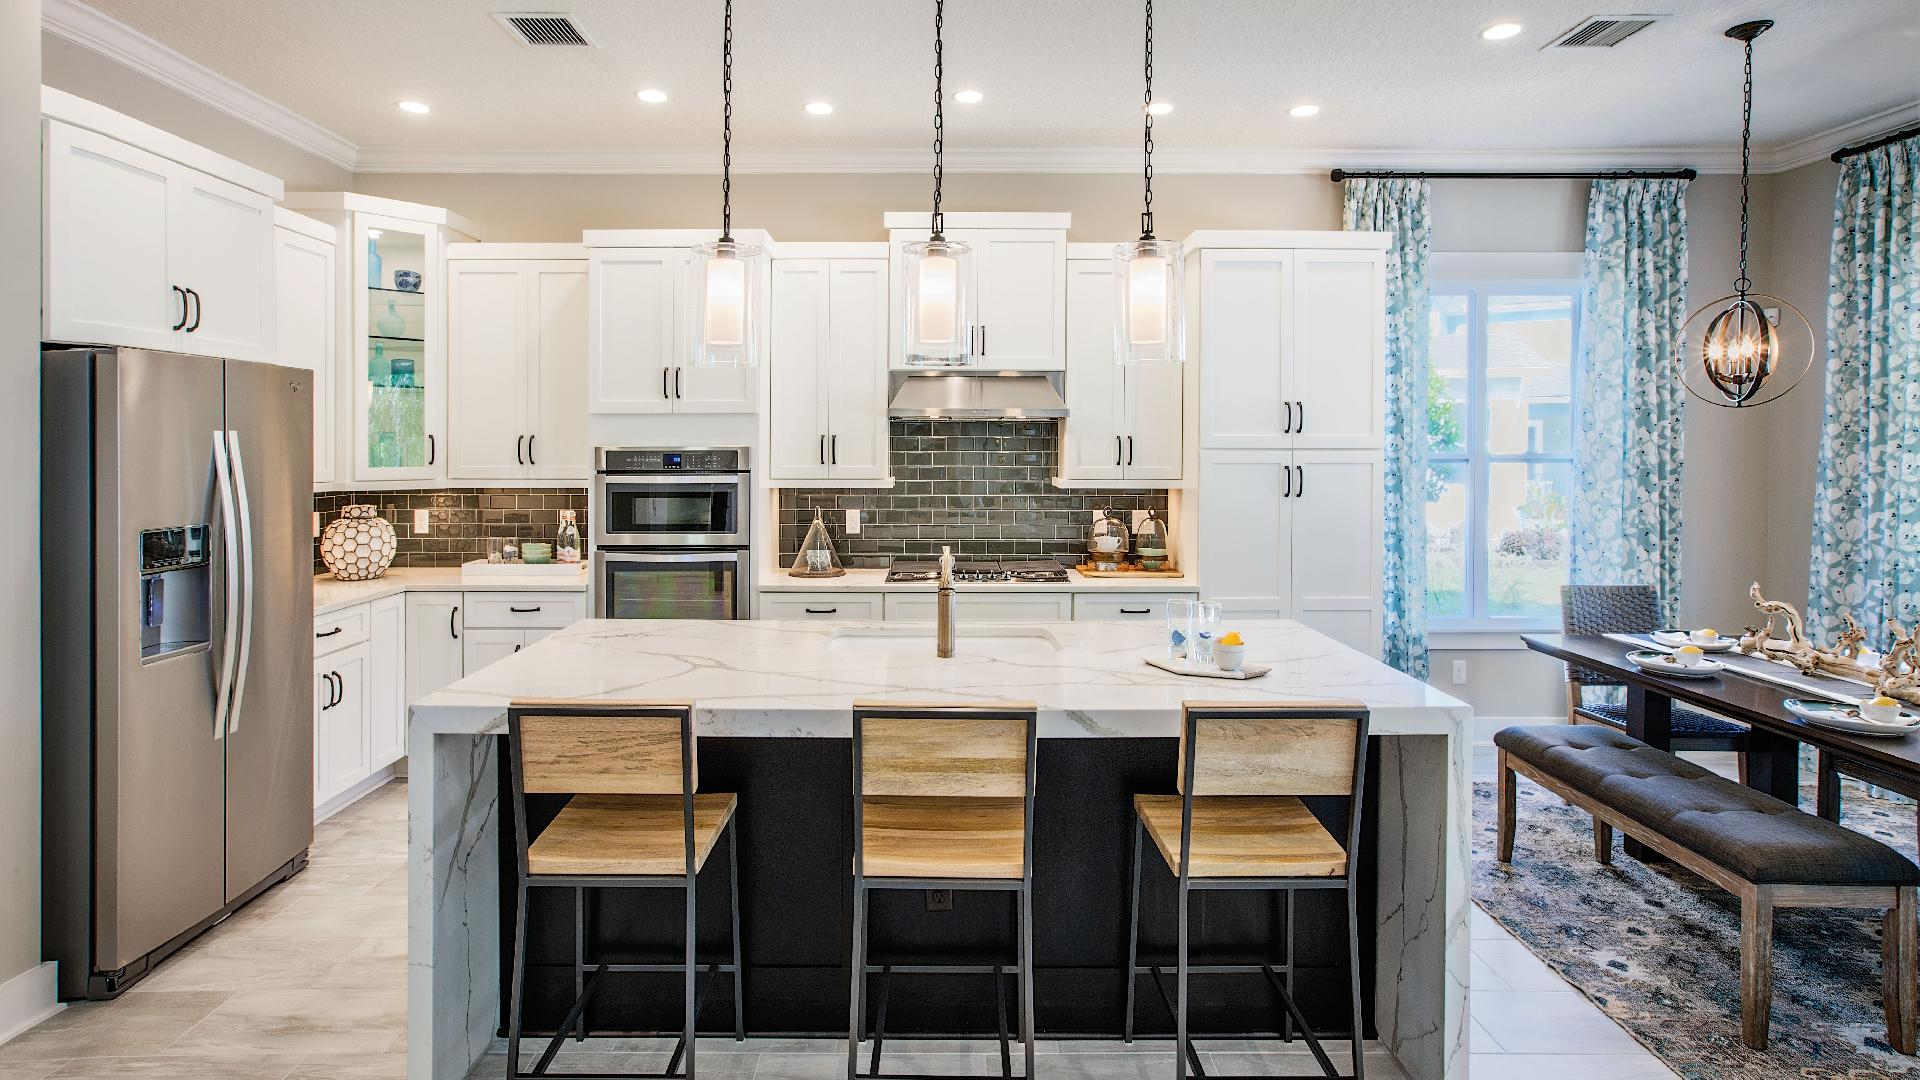 Kitchens made for entertaining